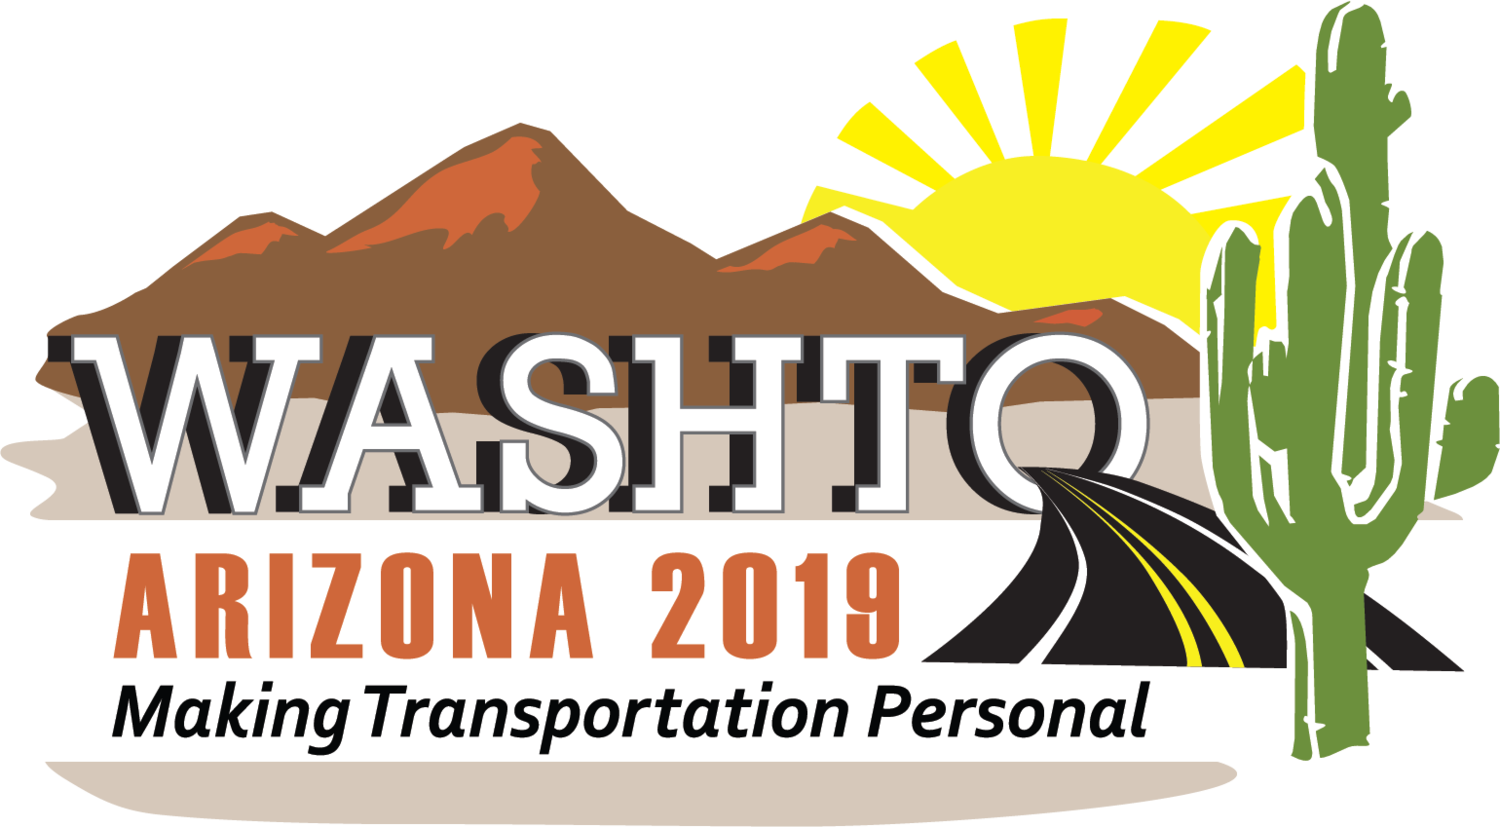 WASHTO 2019 Arizona